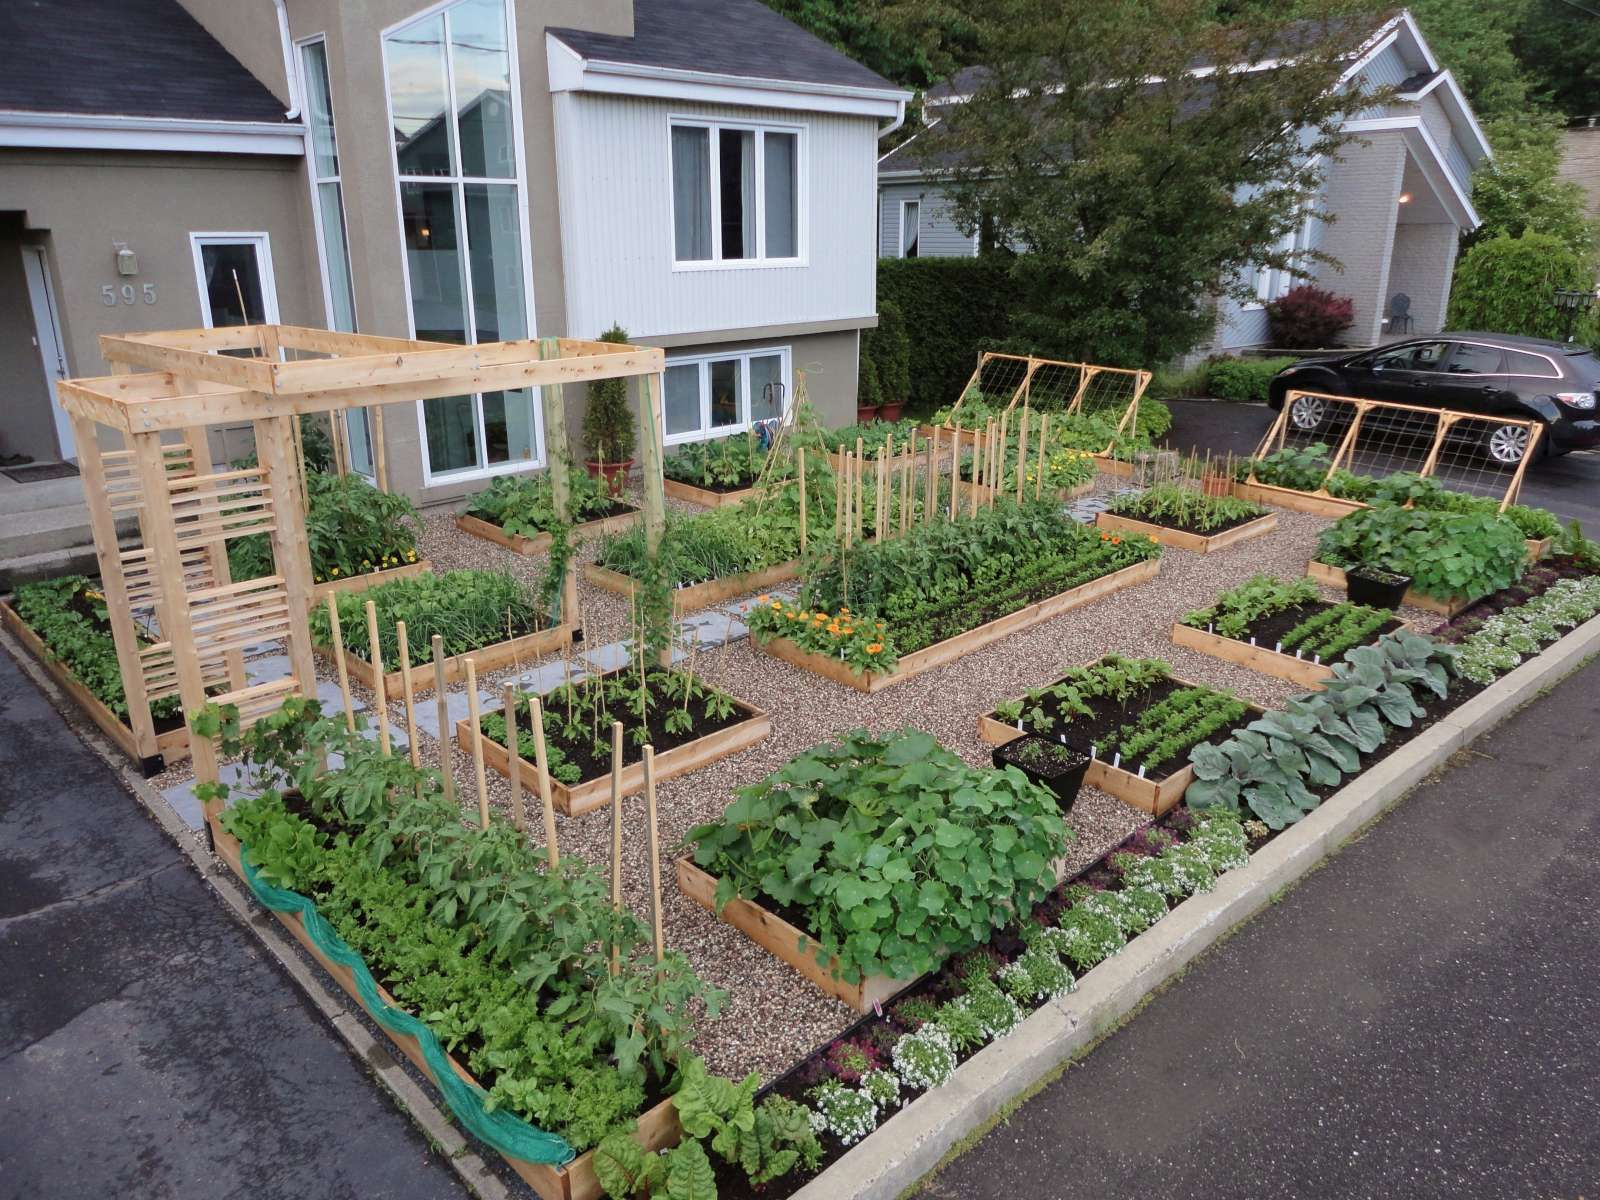 Roomdesignattack Com Garden Layout Vegetable Garden Design Backyard Vegetable Gardens